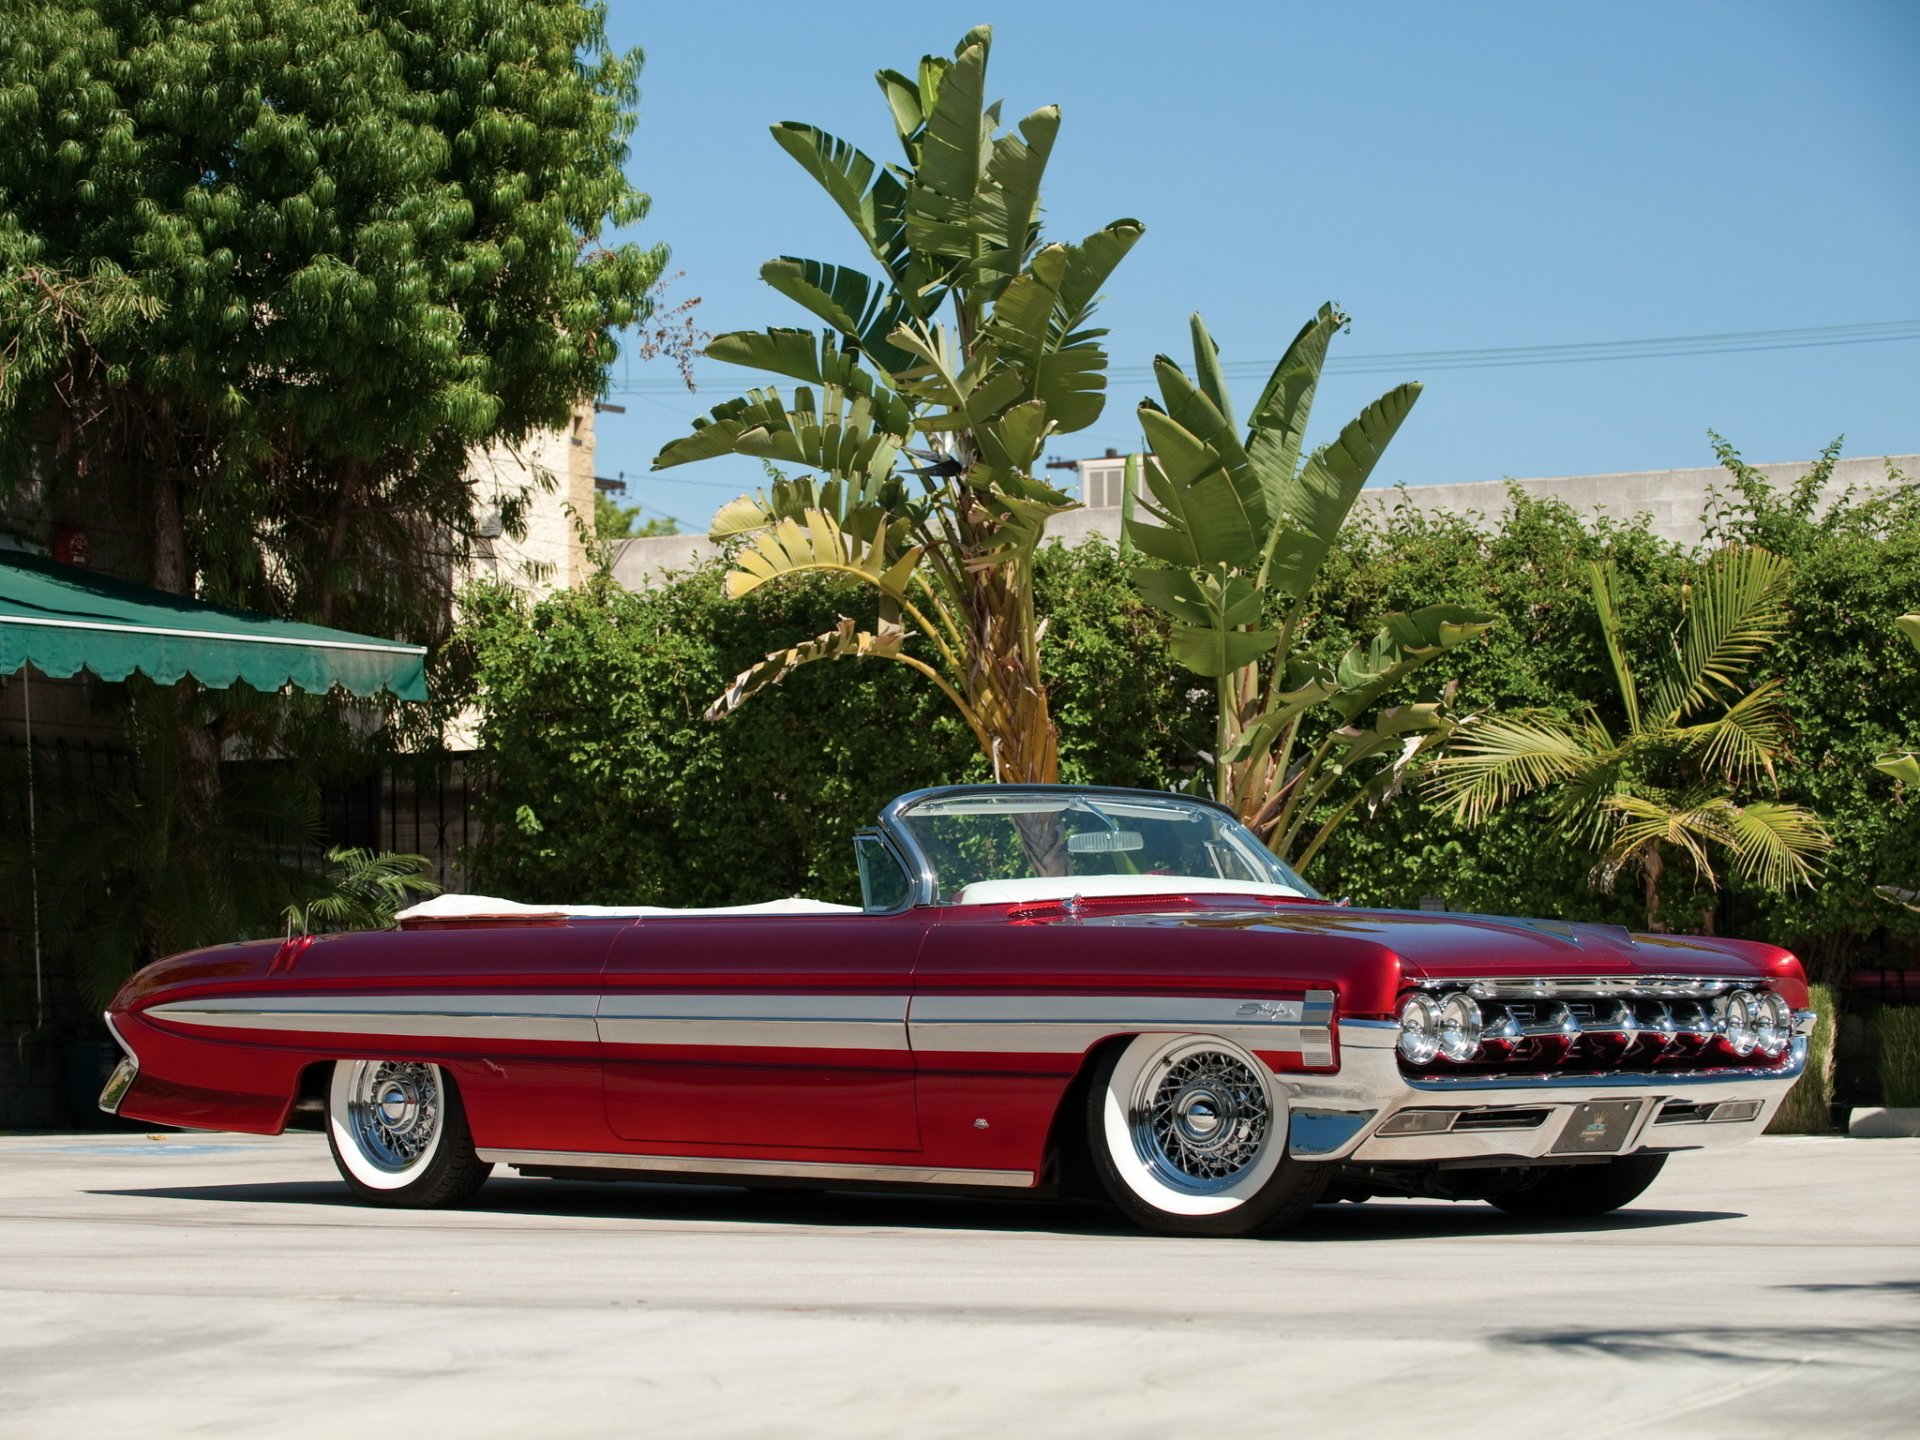 1961 Oldsmobile Starfire Convertible Full HD Wallpaper and ...